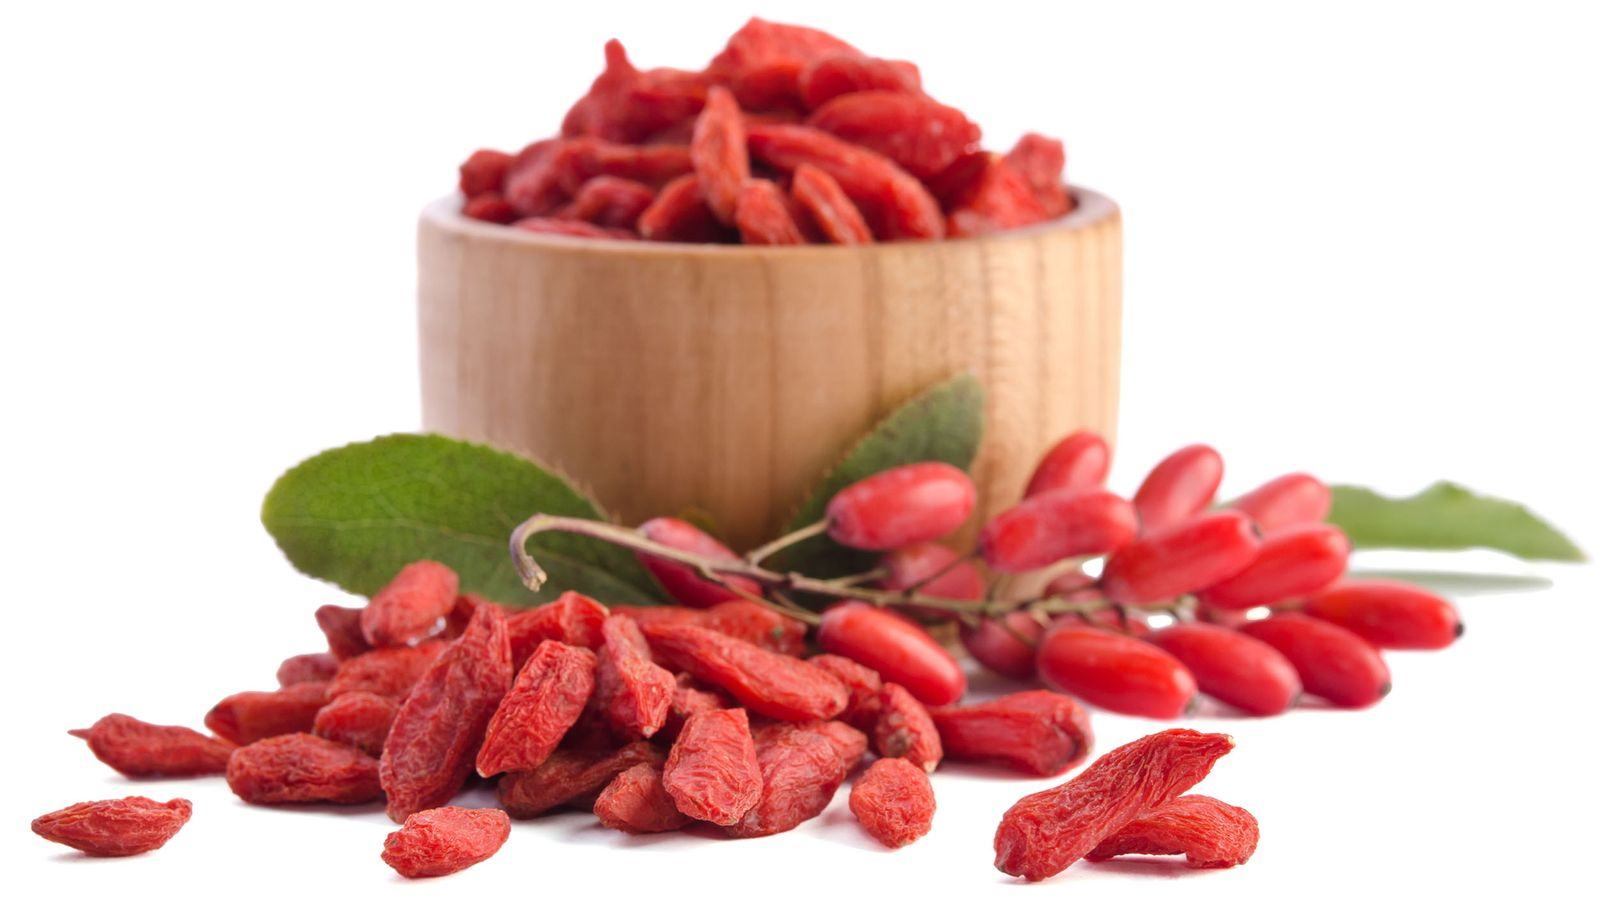 Superfood Goji-Beere